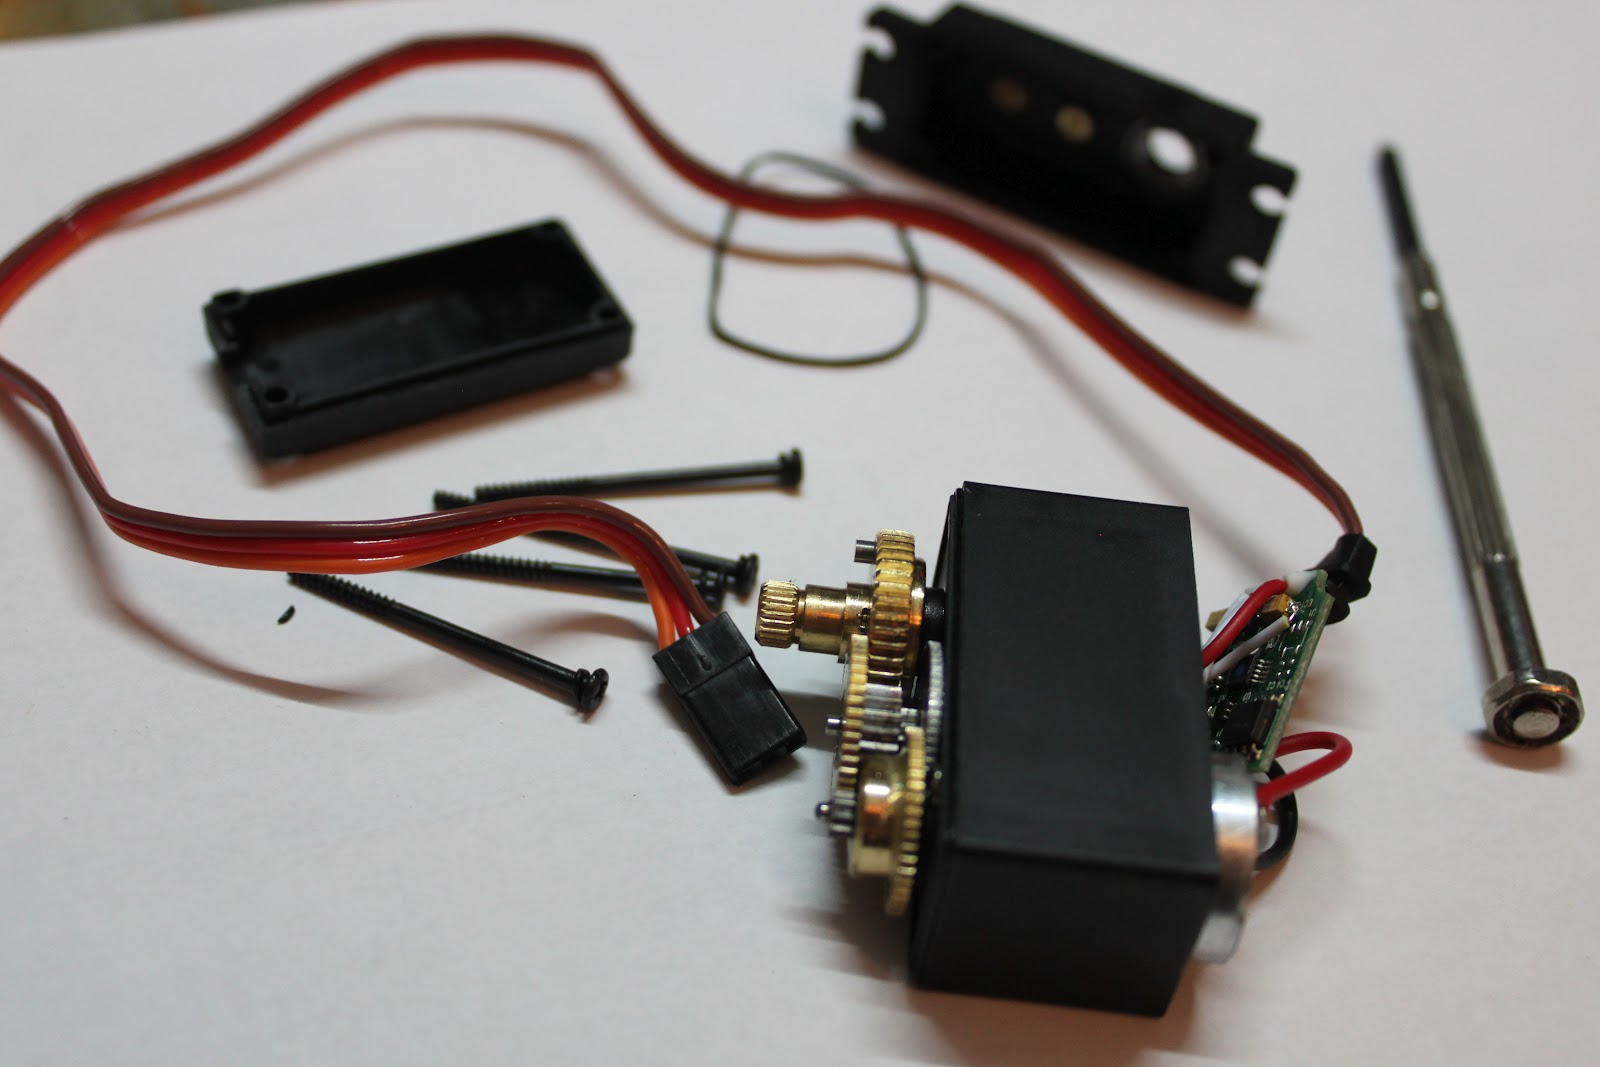 dccharacter\'s electronics projects: Modifying servo for continuous ...